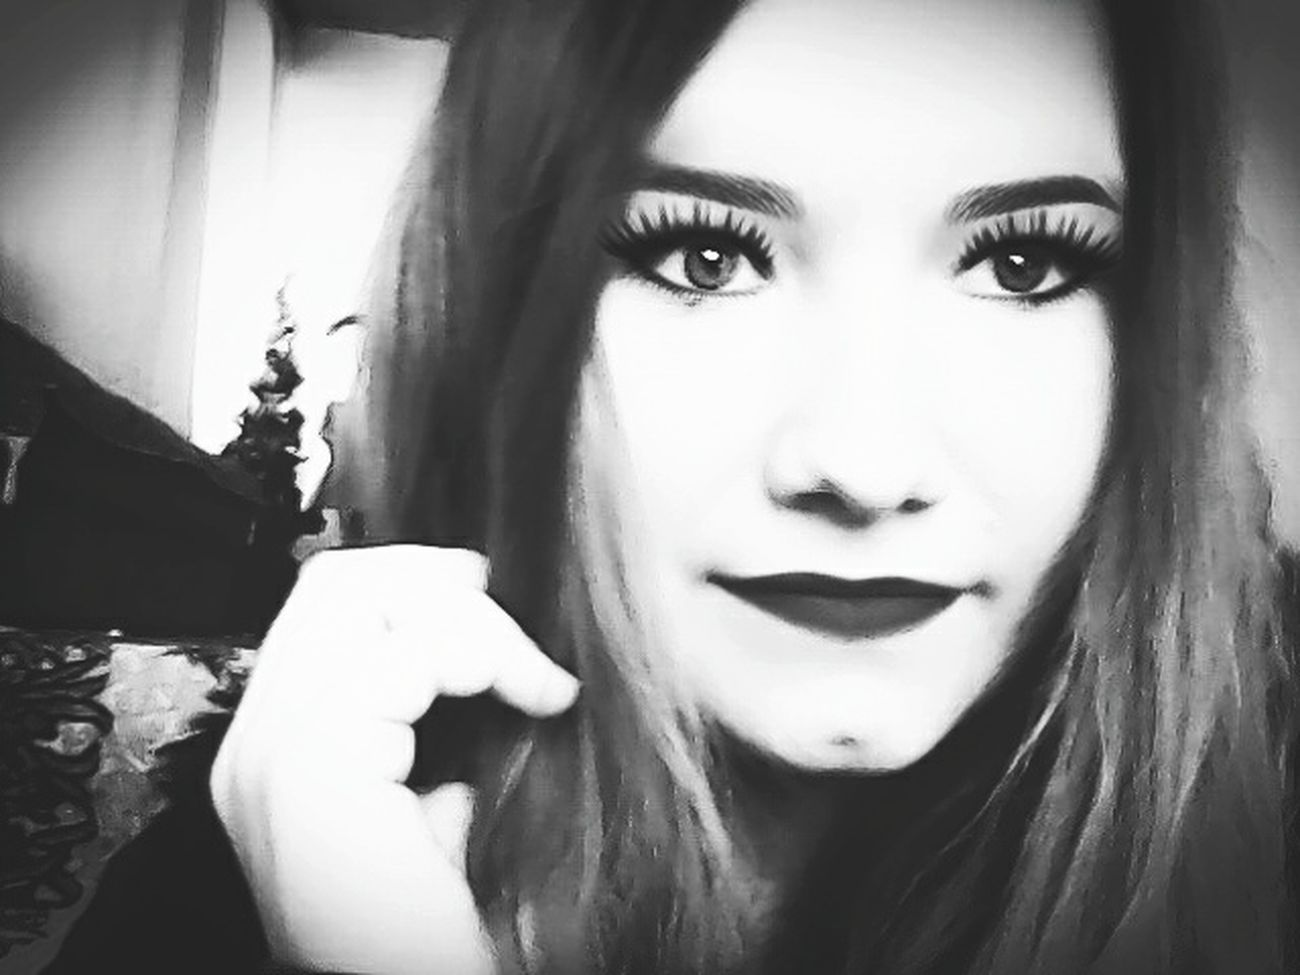 Pretty Girl Beamodel Smile ✌ ModelPose  Popular Photos Sonrisa Shiningeyes Blackandwite Blancoynegro Blackandwhitephotography Photo Blackandwhite Blancoynegro Hairstyle Makeup Lovely Browneyes Blanco Y Negro Selfie ✌ Love Taking Photos